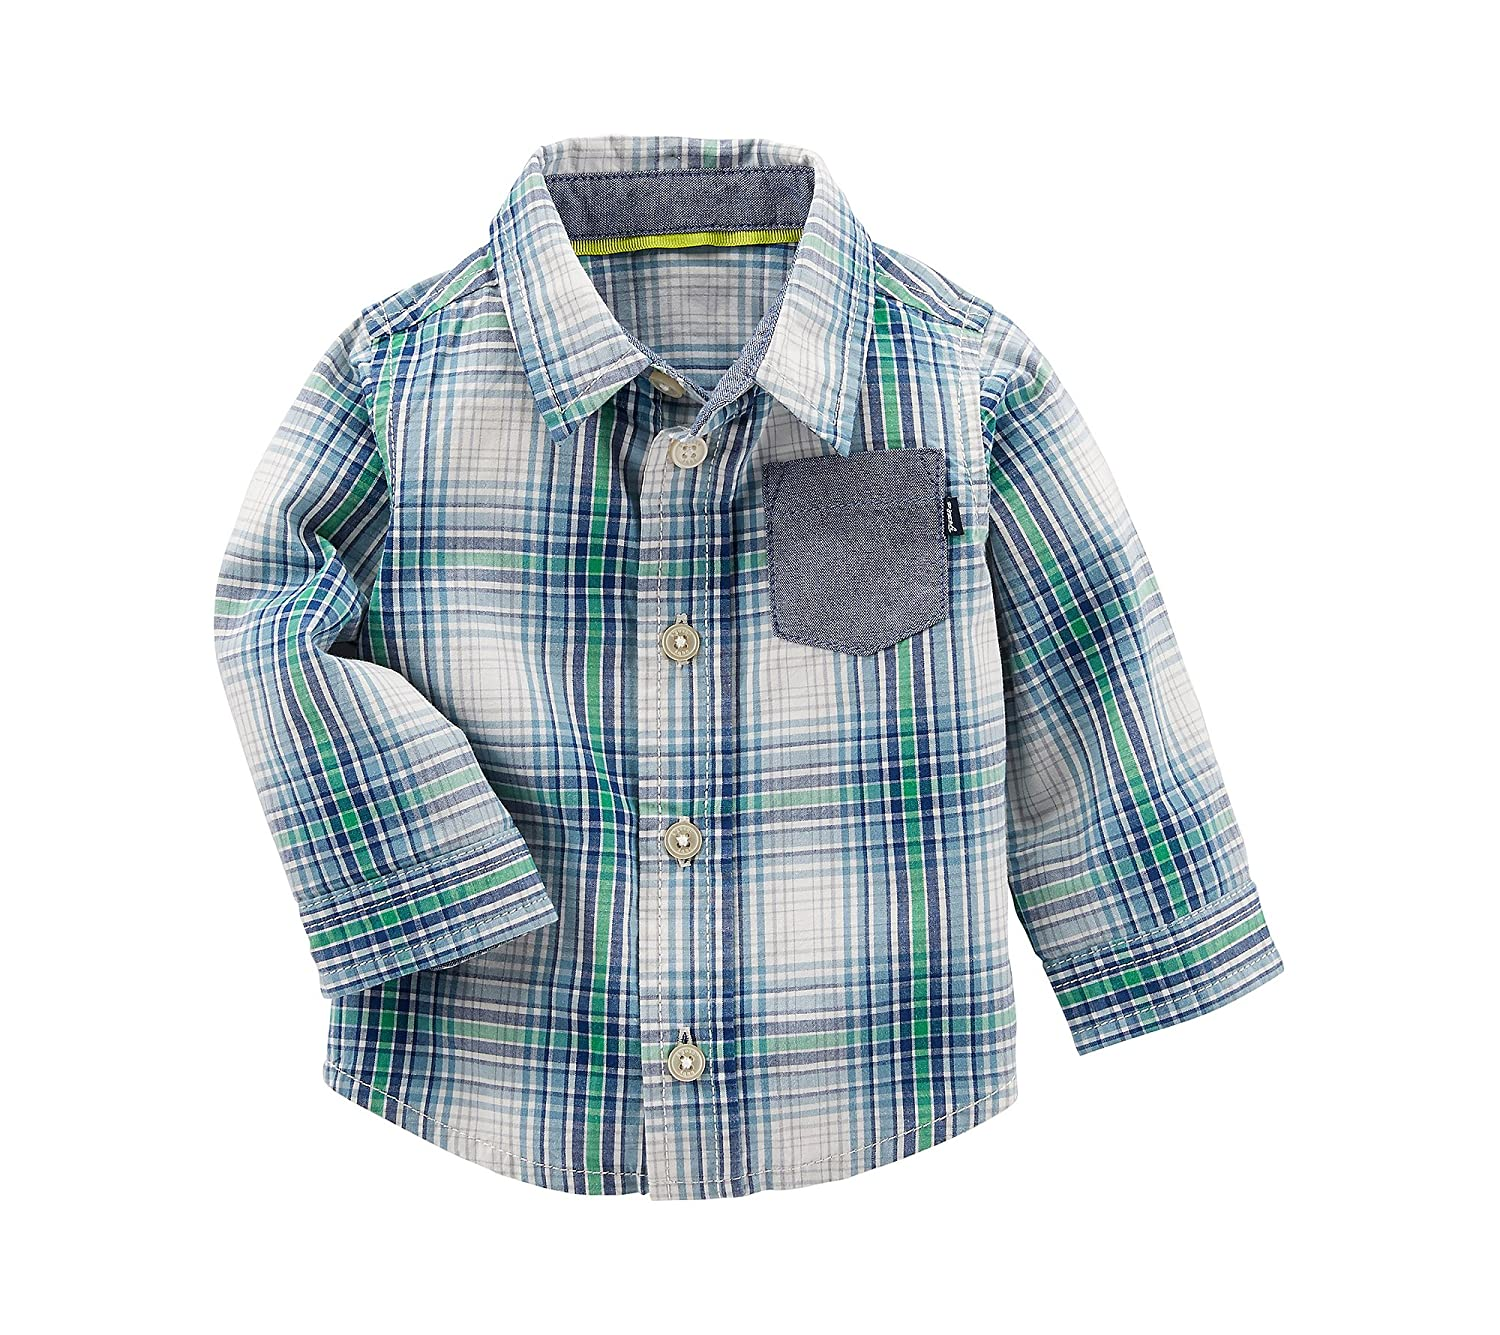 OshKosh B'Gosh Baby Boys' Button Front Plaid Shirt 12254215